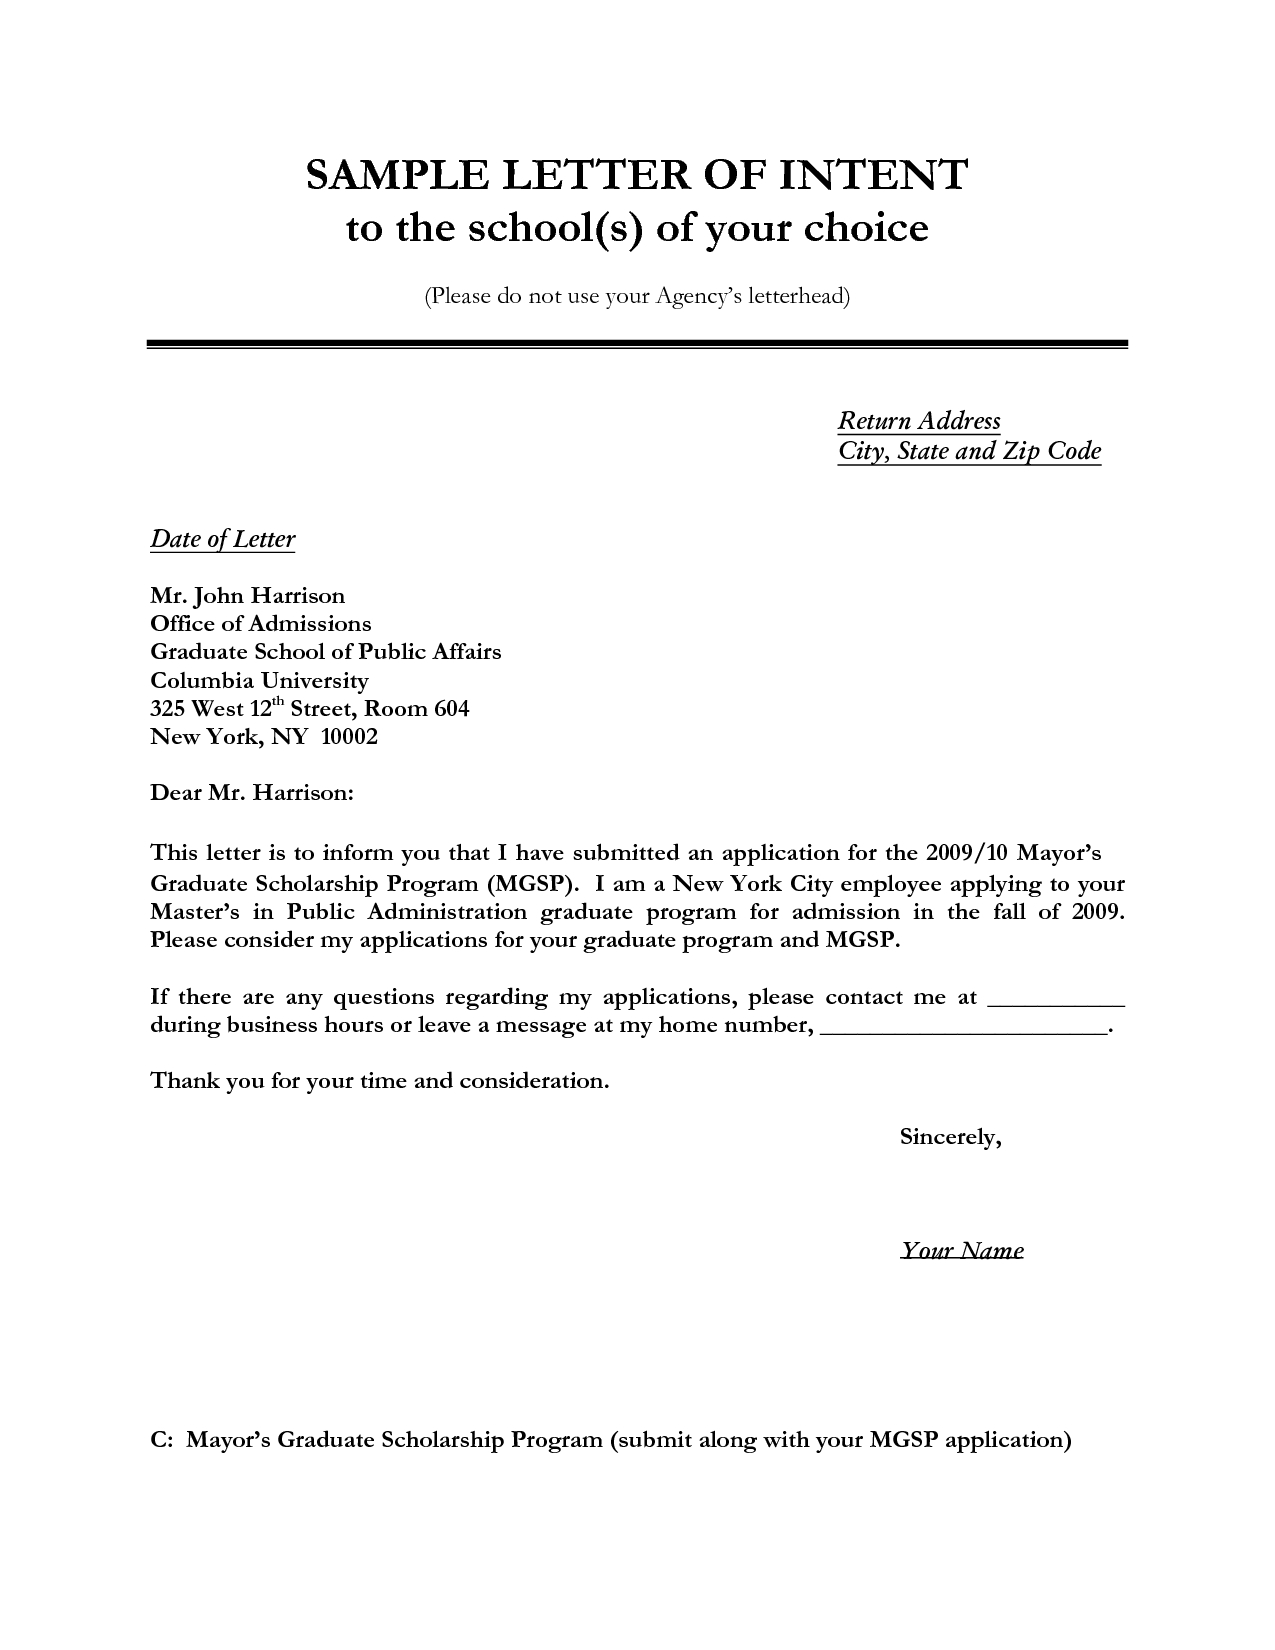 Real Estate Offer Letter Template Free - Letter Of Intent Sample